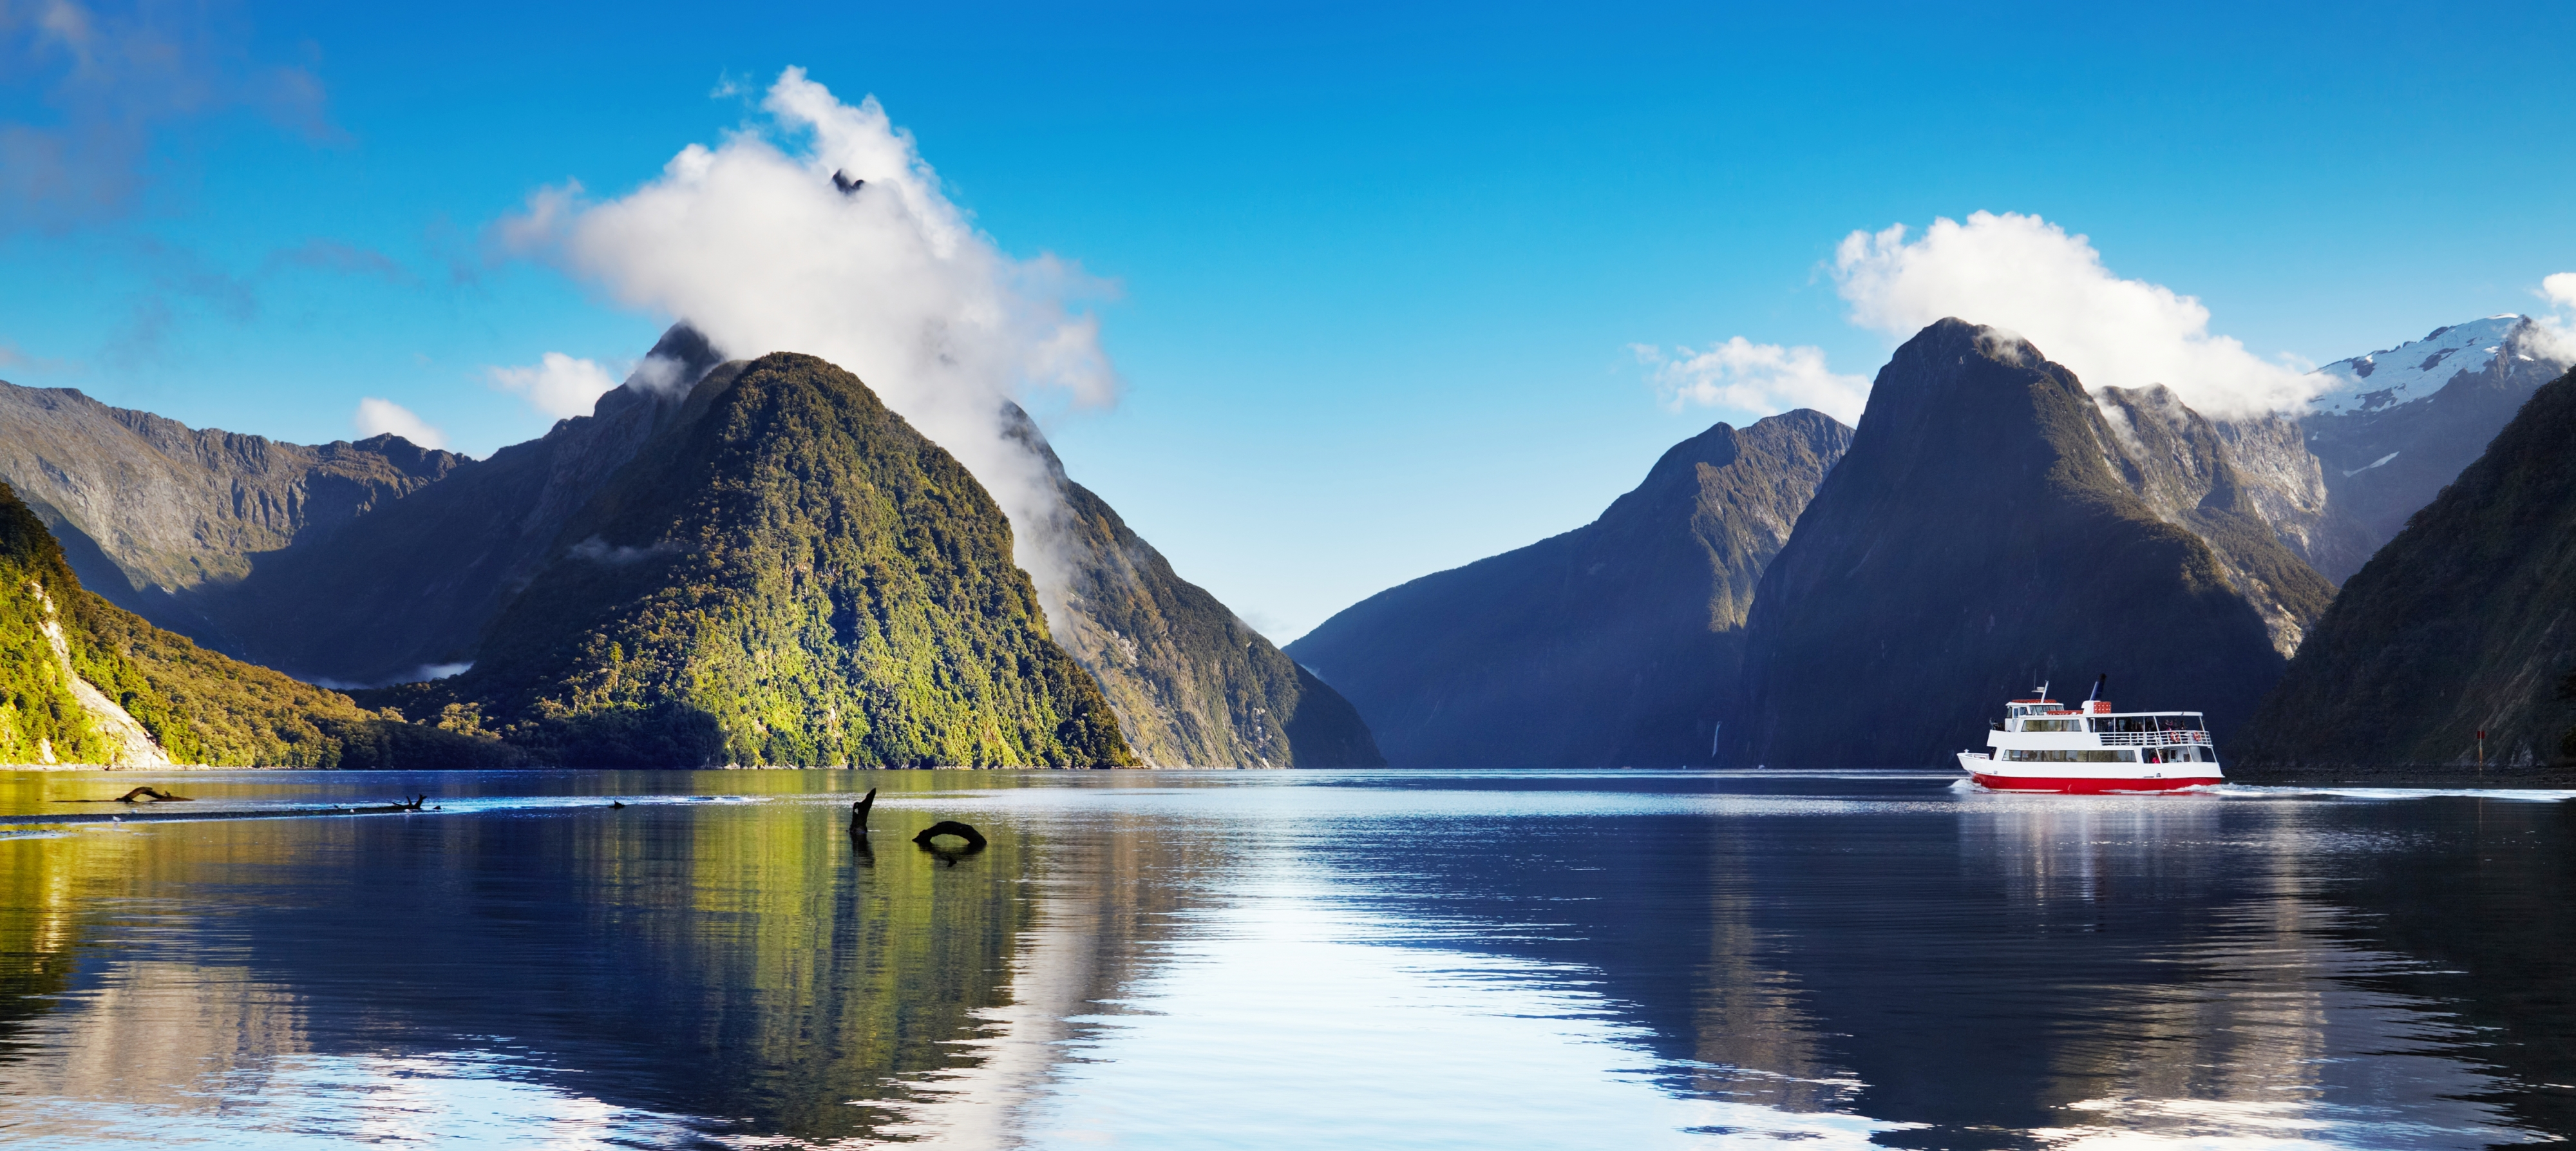 ferry on smooth water of Milford Sound with mountains in the background